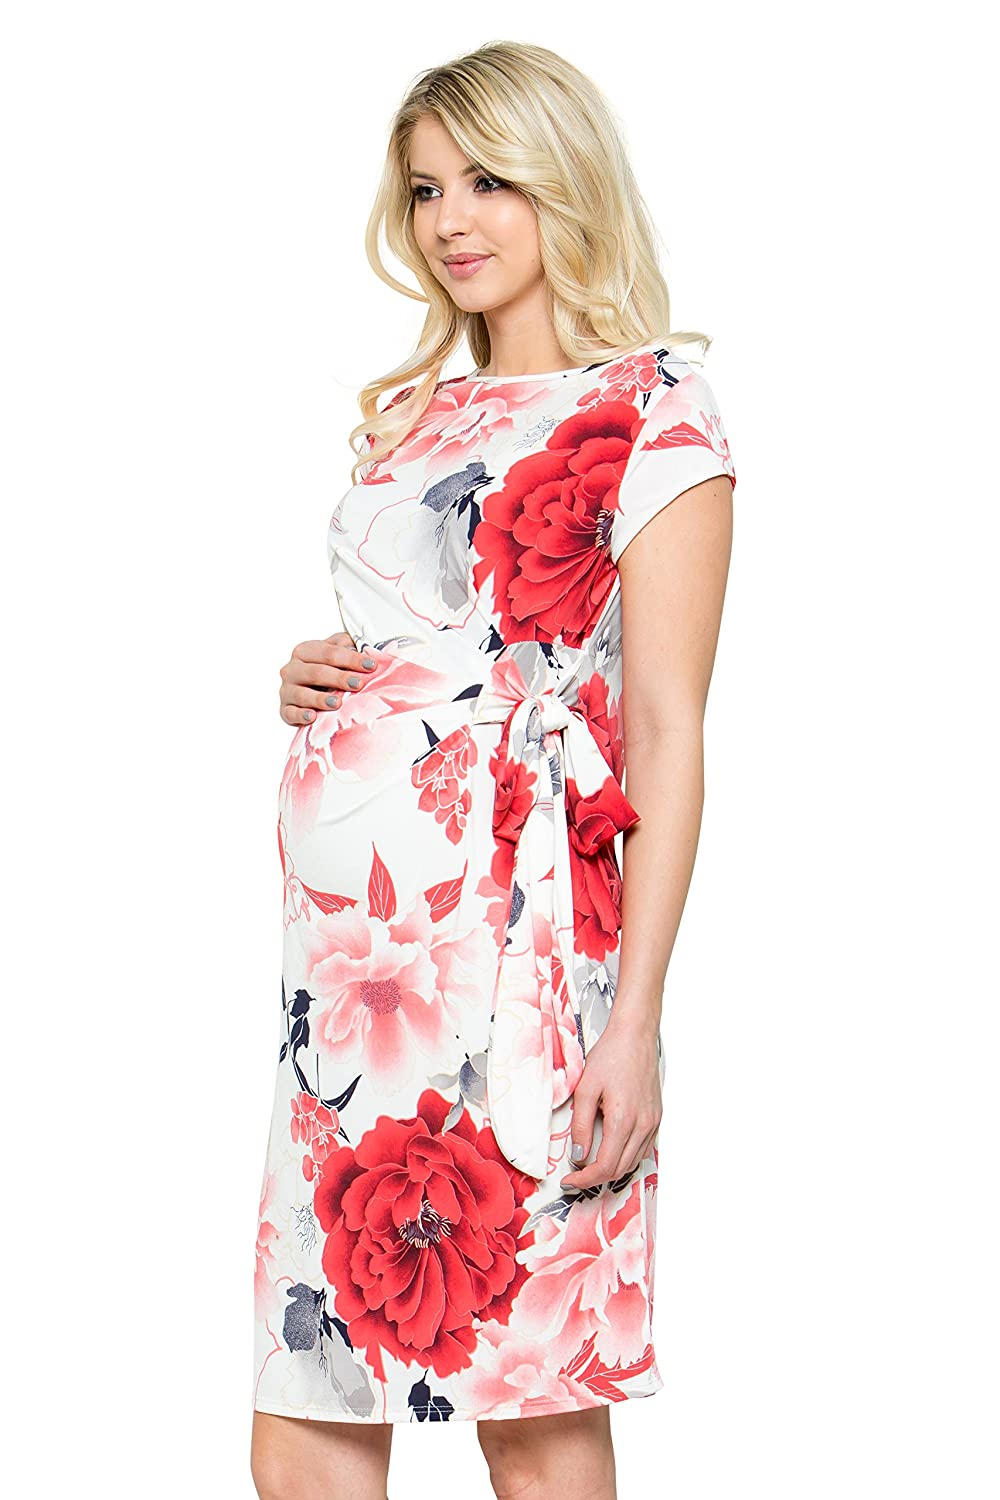 My Bump DRESS レディース B07CC4VN7R  Ivory/Red#2 Flower Large